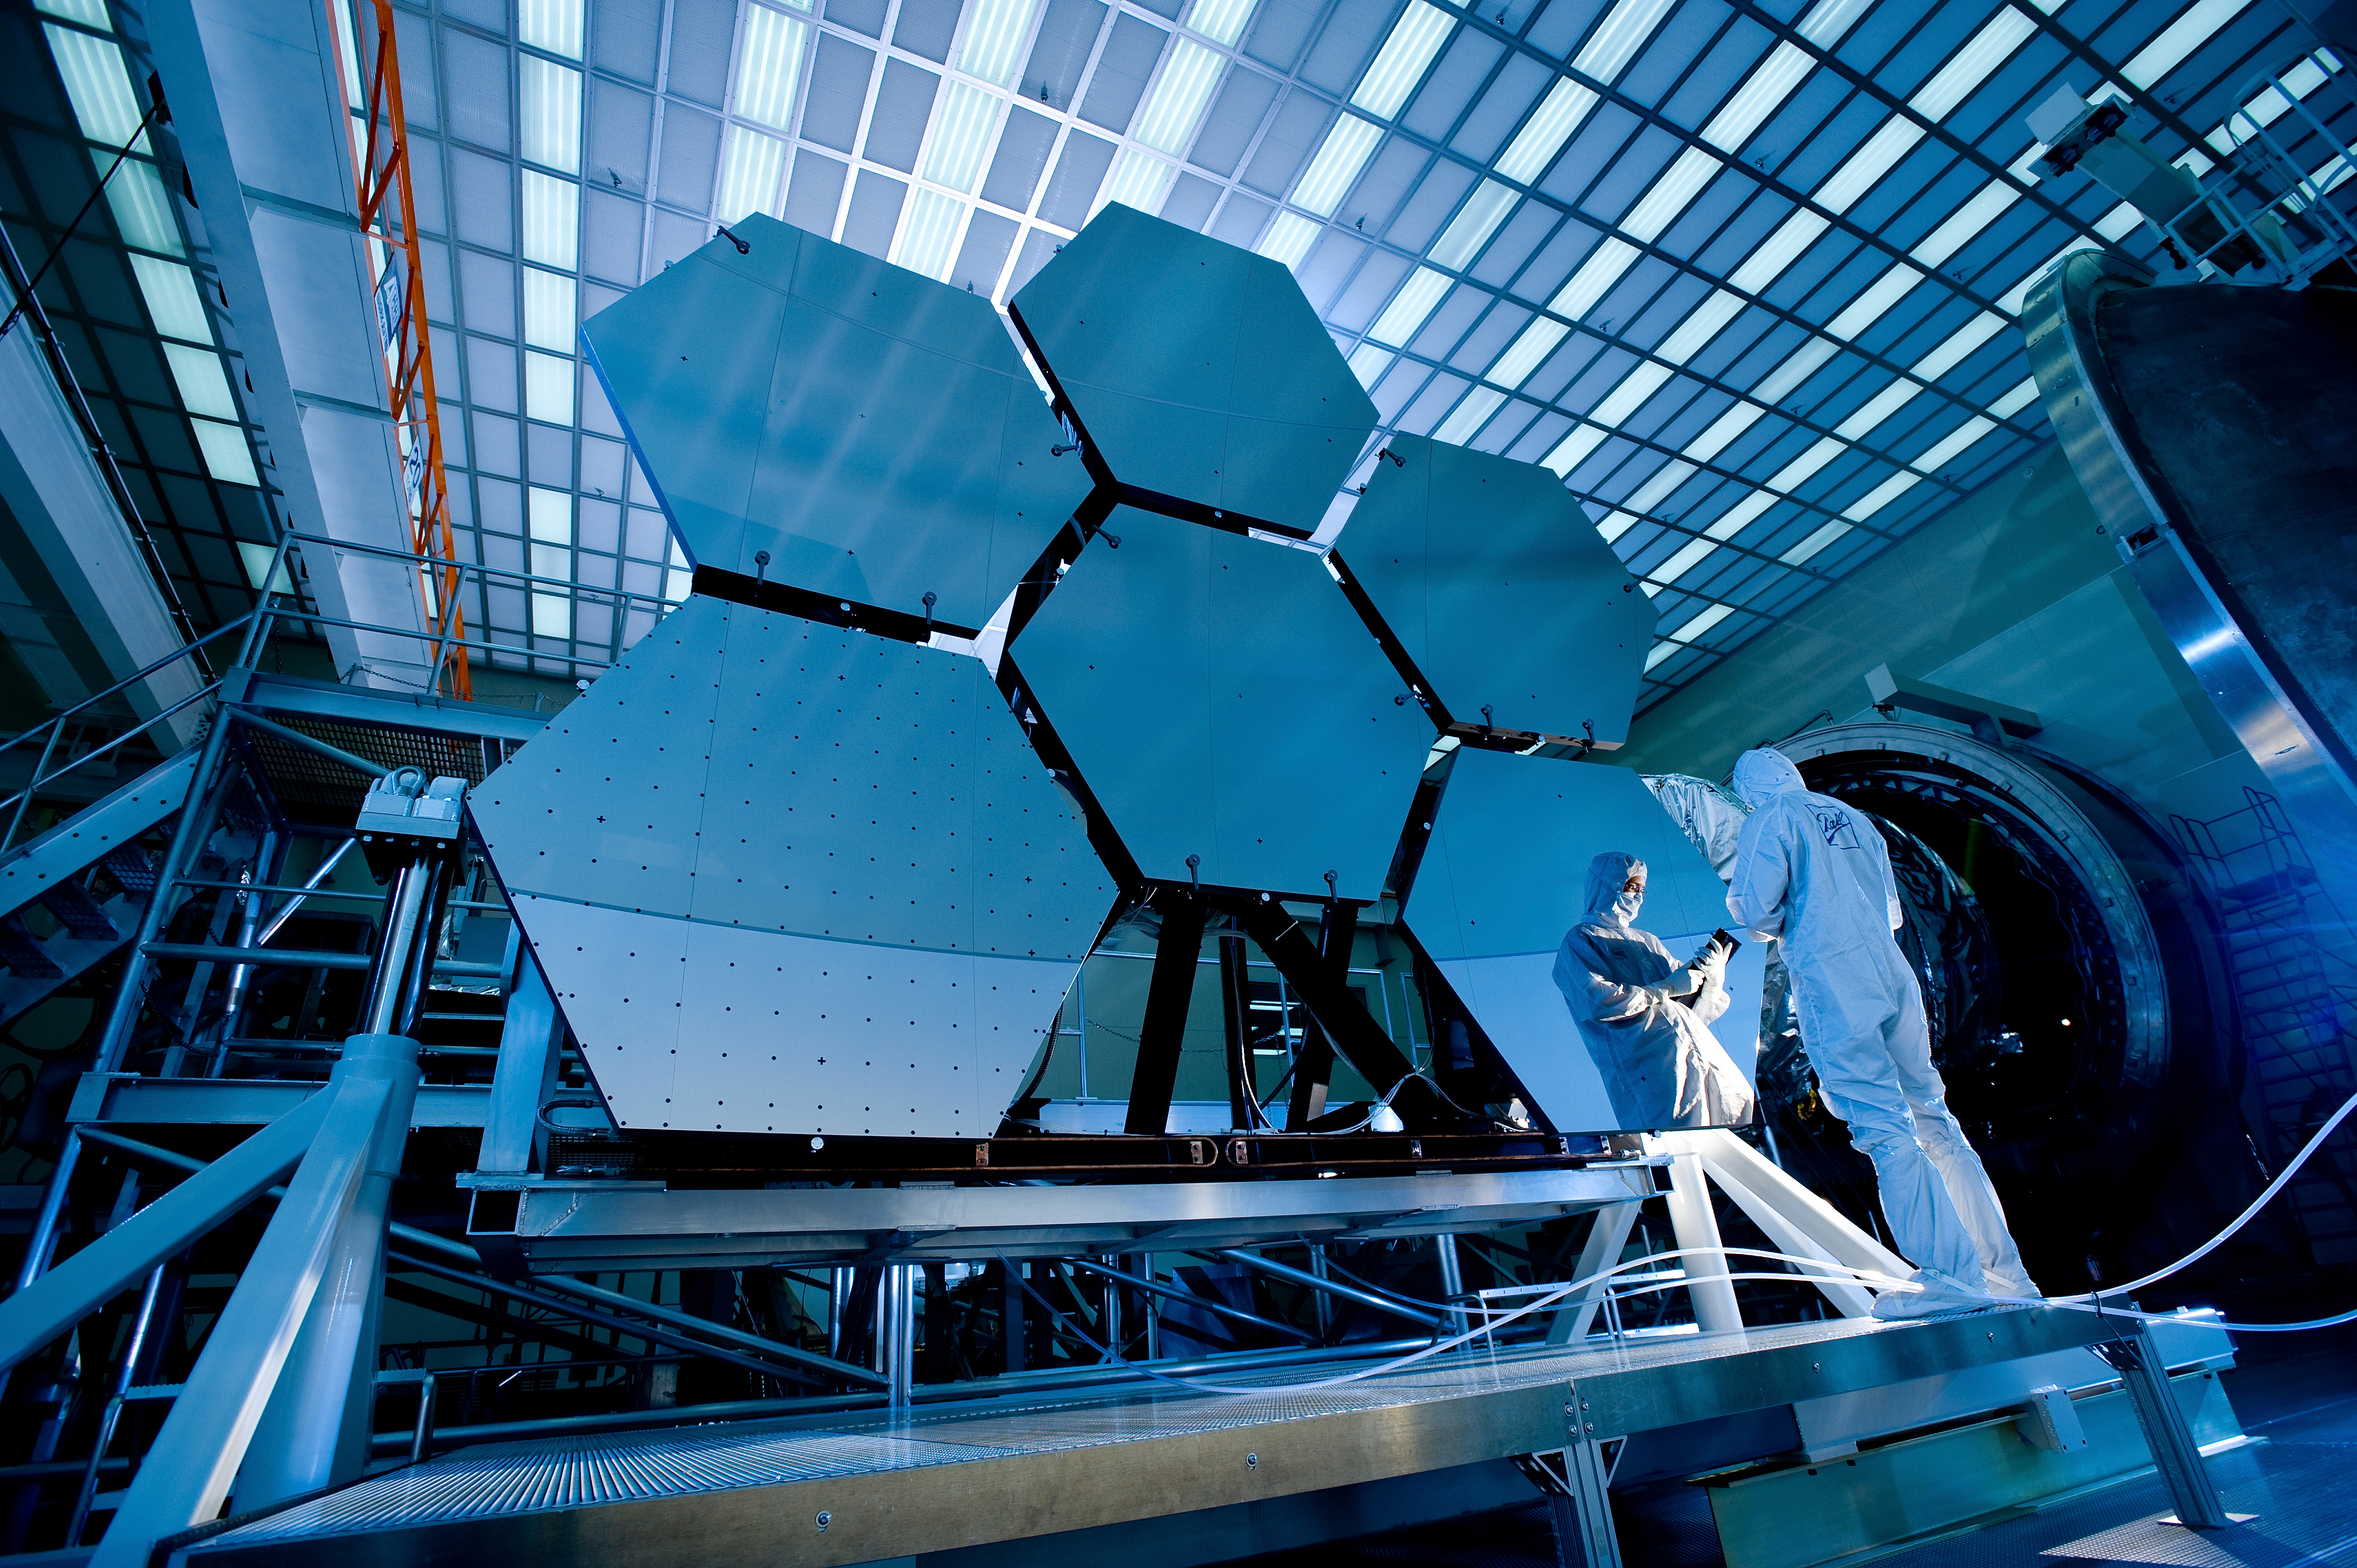 Space Telescope - photo credit: NASA/MSFC/David Higginbotham/Emmett Given